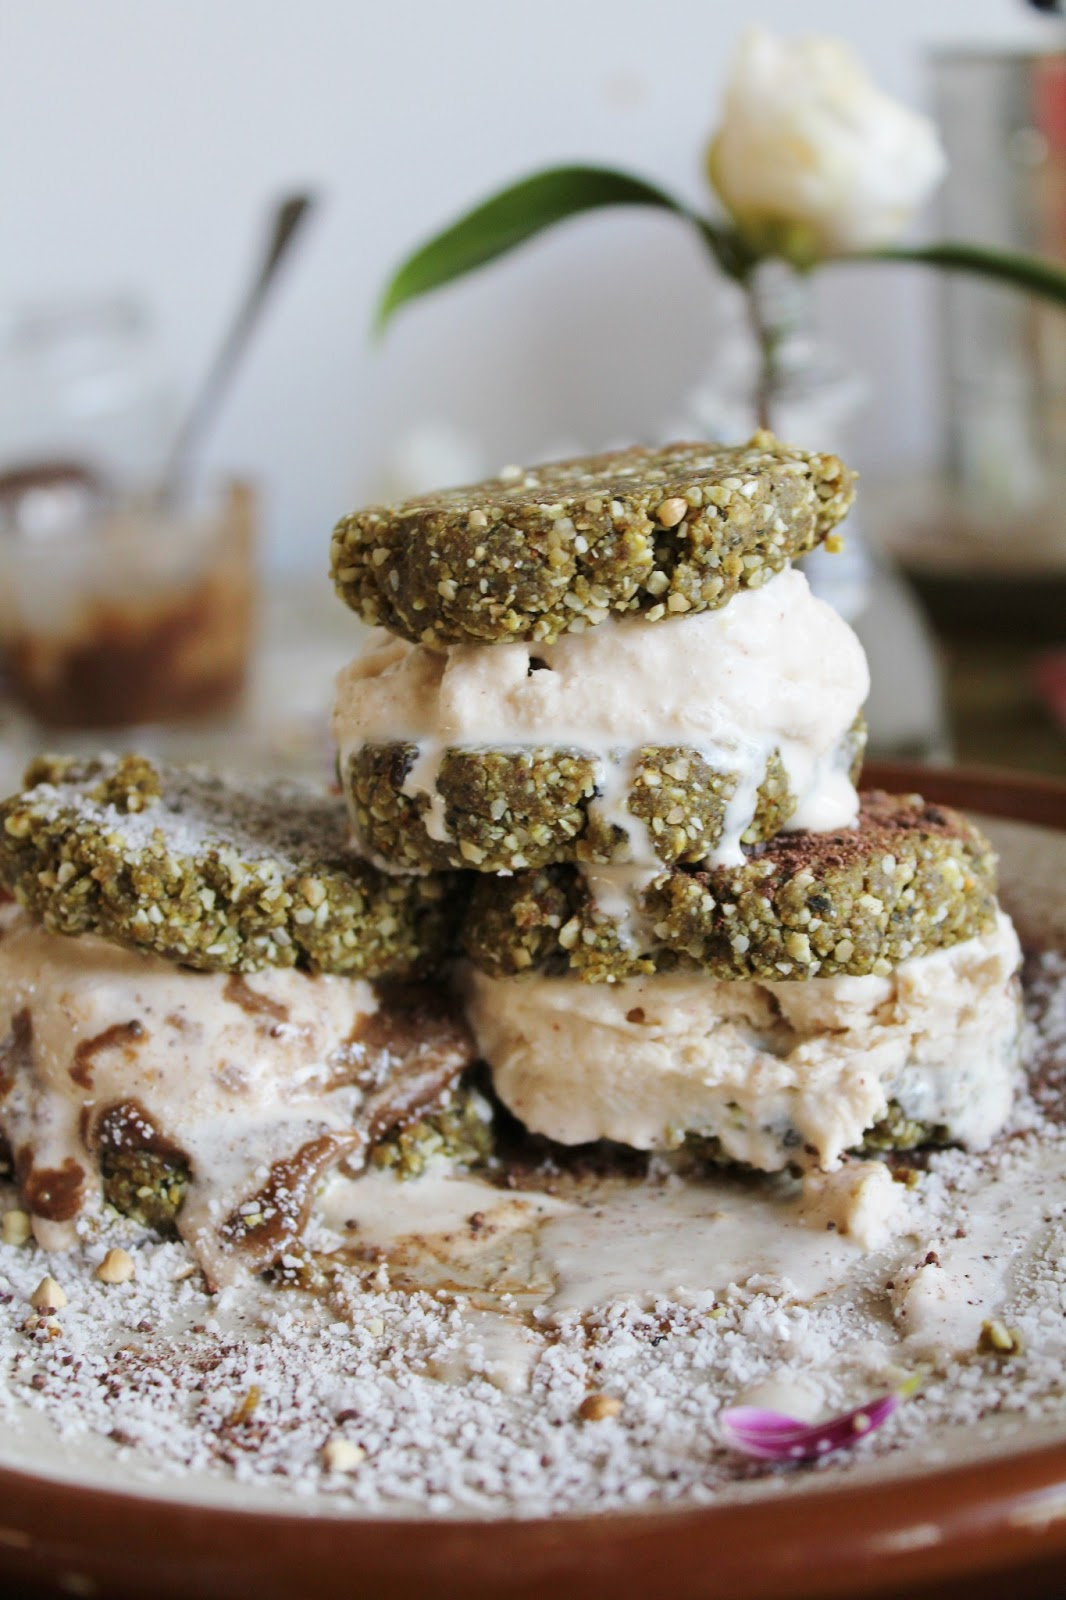 ... Vegan Life: basil + peanut butter cookies with coconut + chili ice